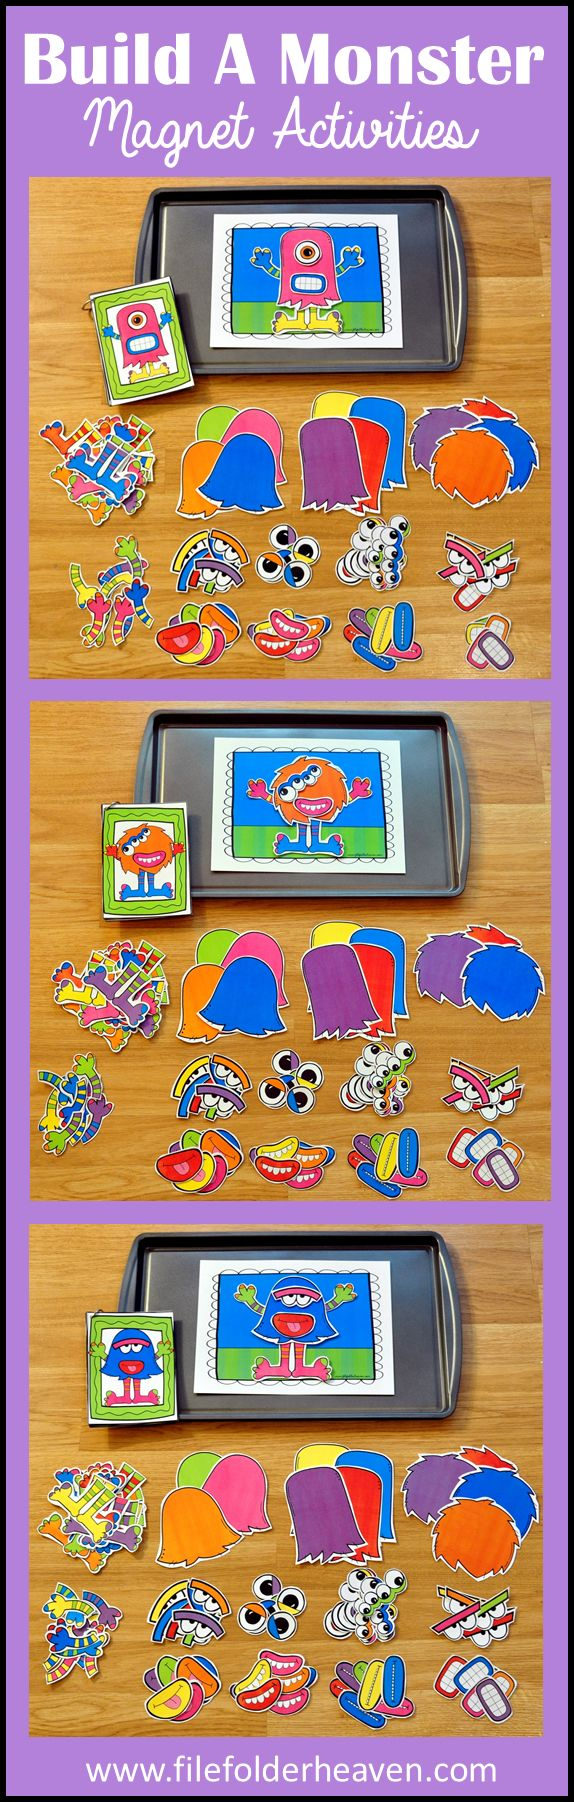 "These Build a Monster Center Activities can be set up as cookie sheet activities, a magnet center or completed as cut and glue activities. This activity includes: 1 background, 12 build a monster example cards, and a HUGE set of ""build a monster"" building pieces for creative building (all in color).  In this activity, students work on visual discrimination skills, recognizing same and different, and replicating a model."